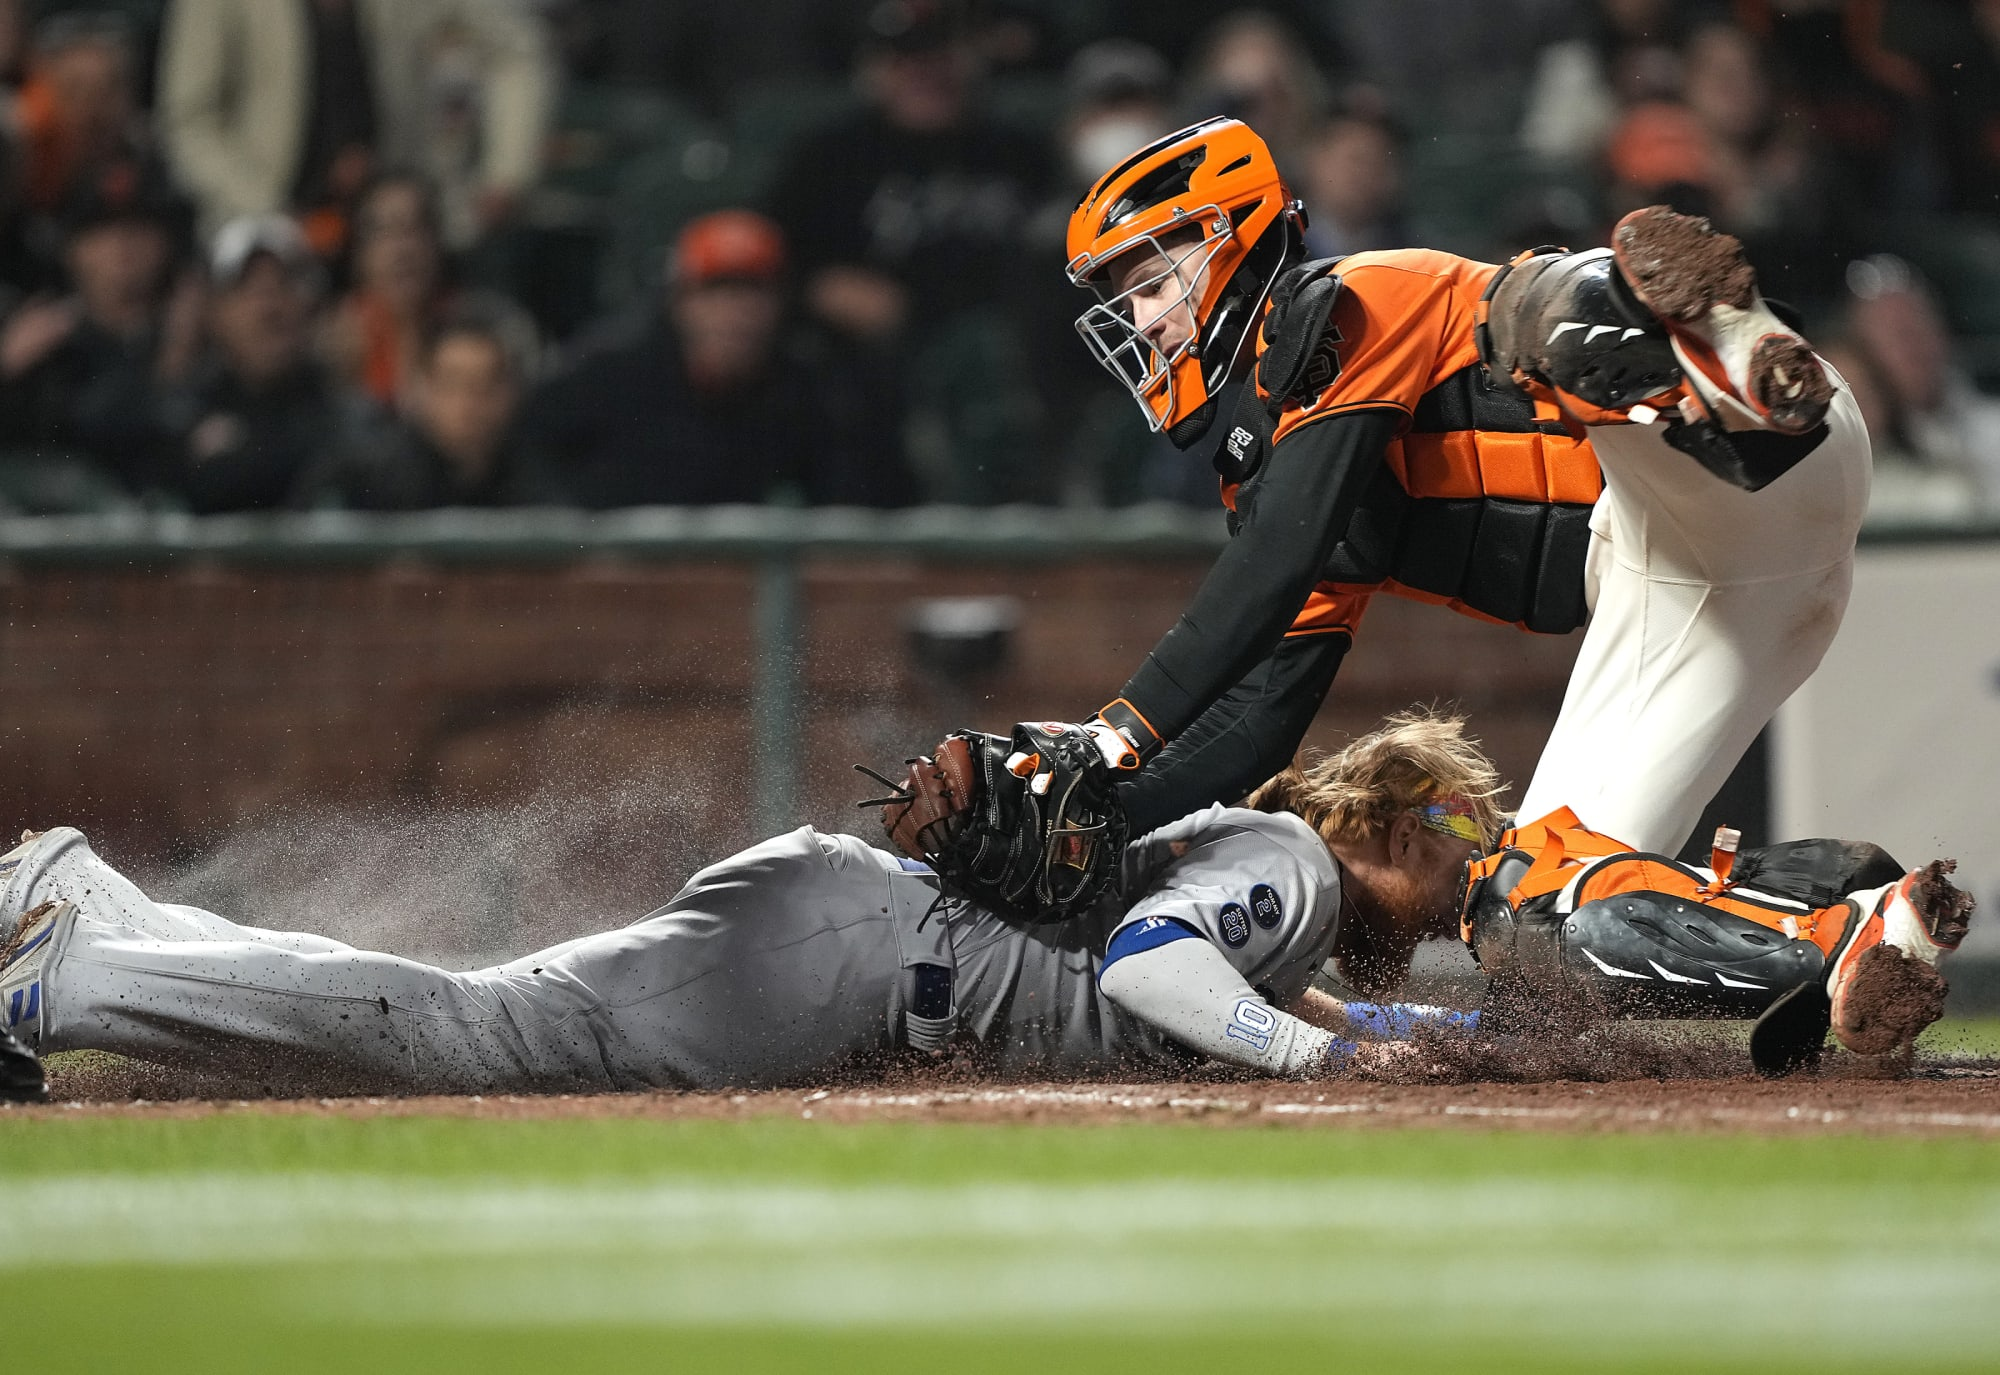 San Francisco Giants magic number to win NL West